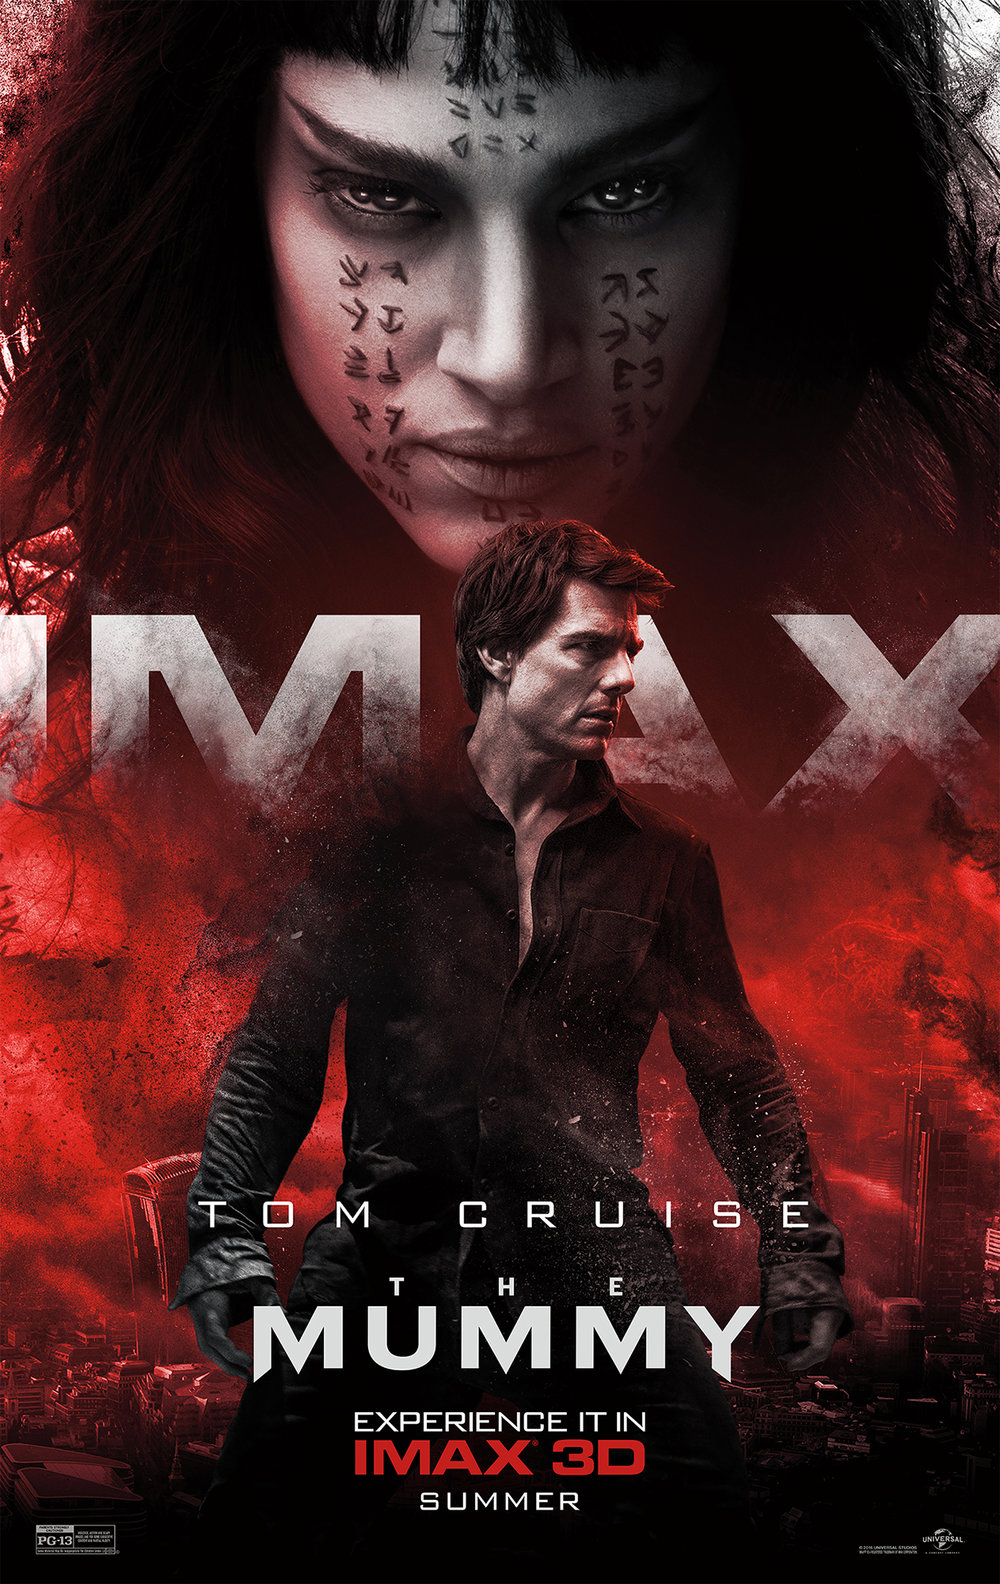 TheMummy_IMAX_1Sht_Red_2500px_100dpi.jpg